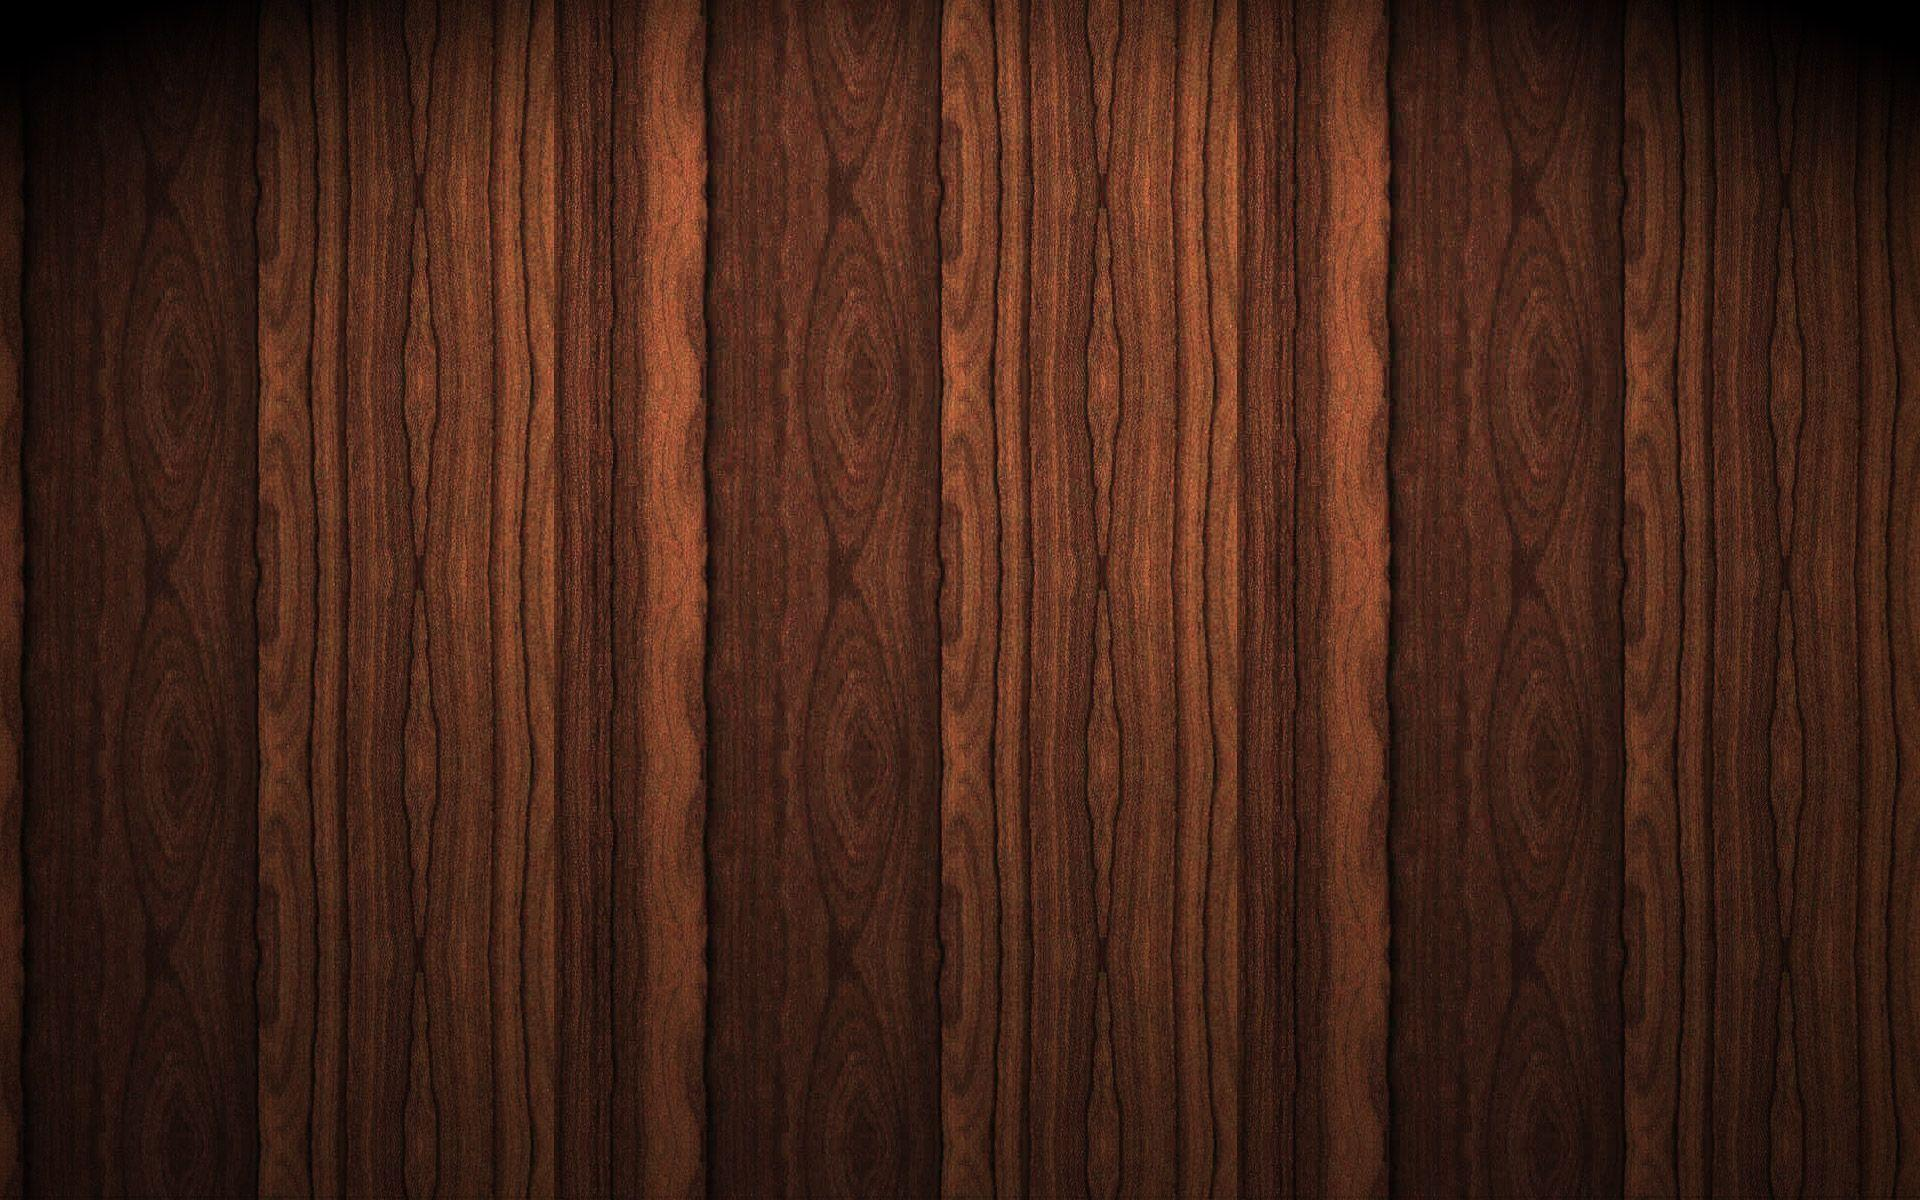 Wood HD Wallpapers 1920x1200